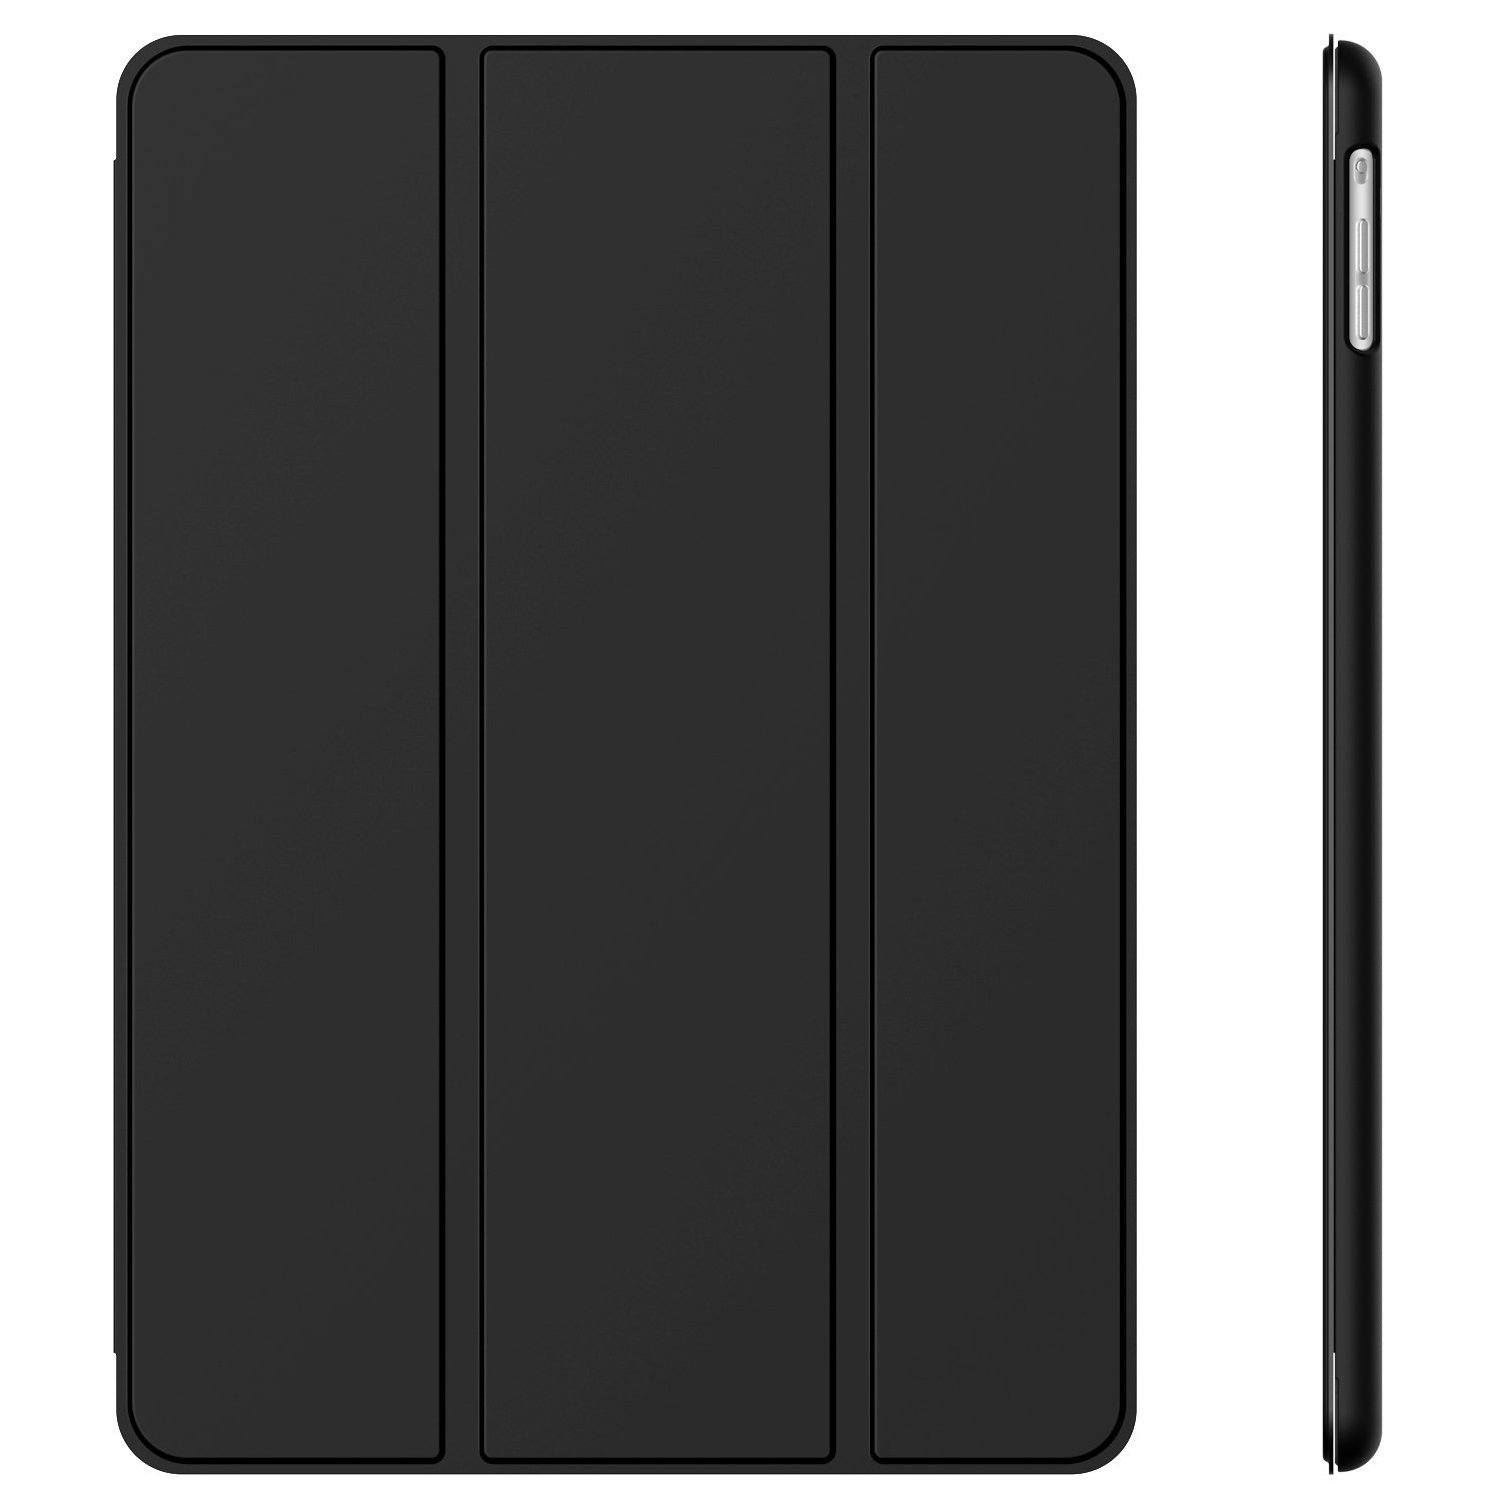 JETech Case for Apple iPad Air 1st Edition (NOT for iPad Air 2), Smart Cover with Auto Wake/Sleep, Black